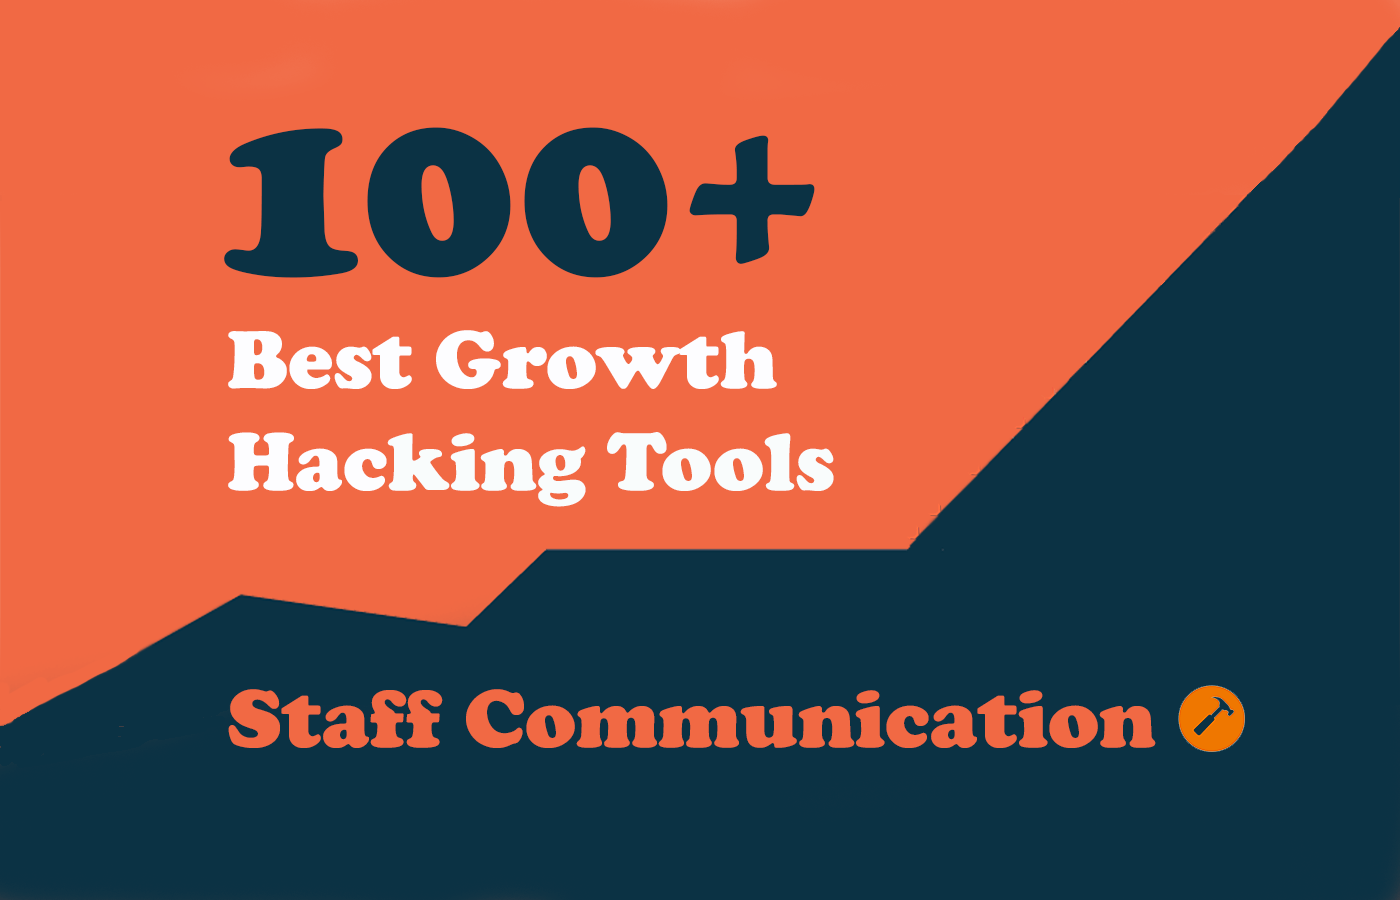 100 Growth Staff Communication - Growth Hacking